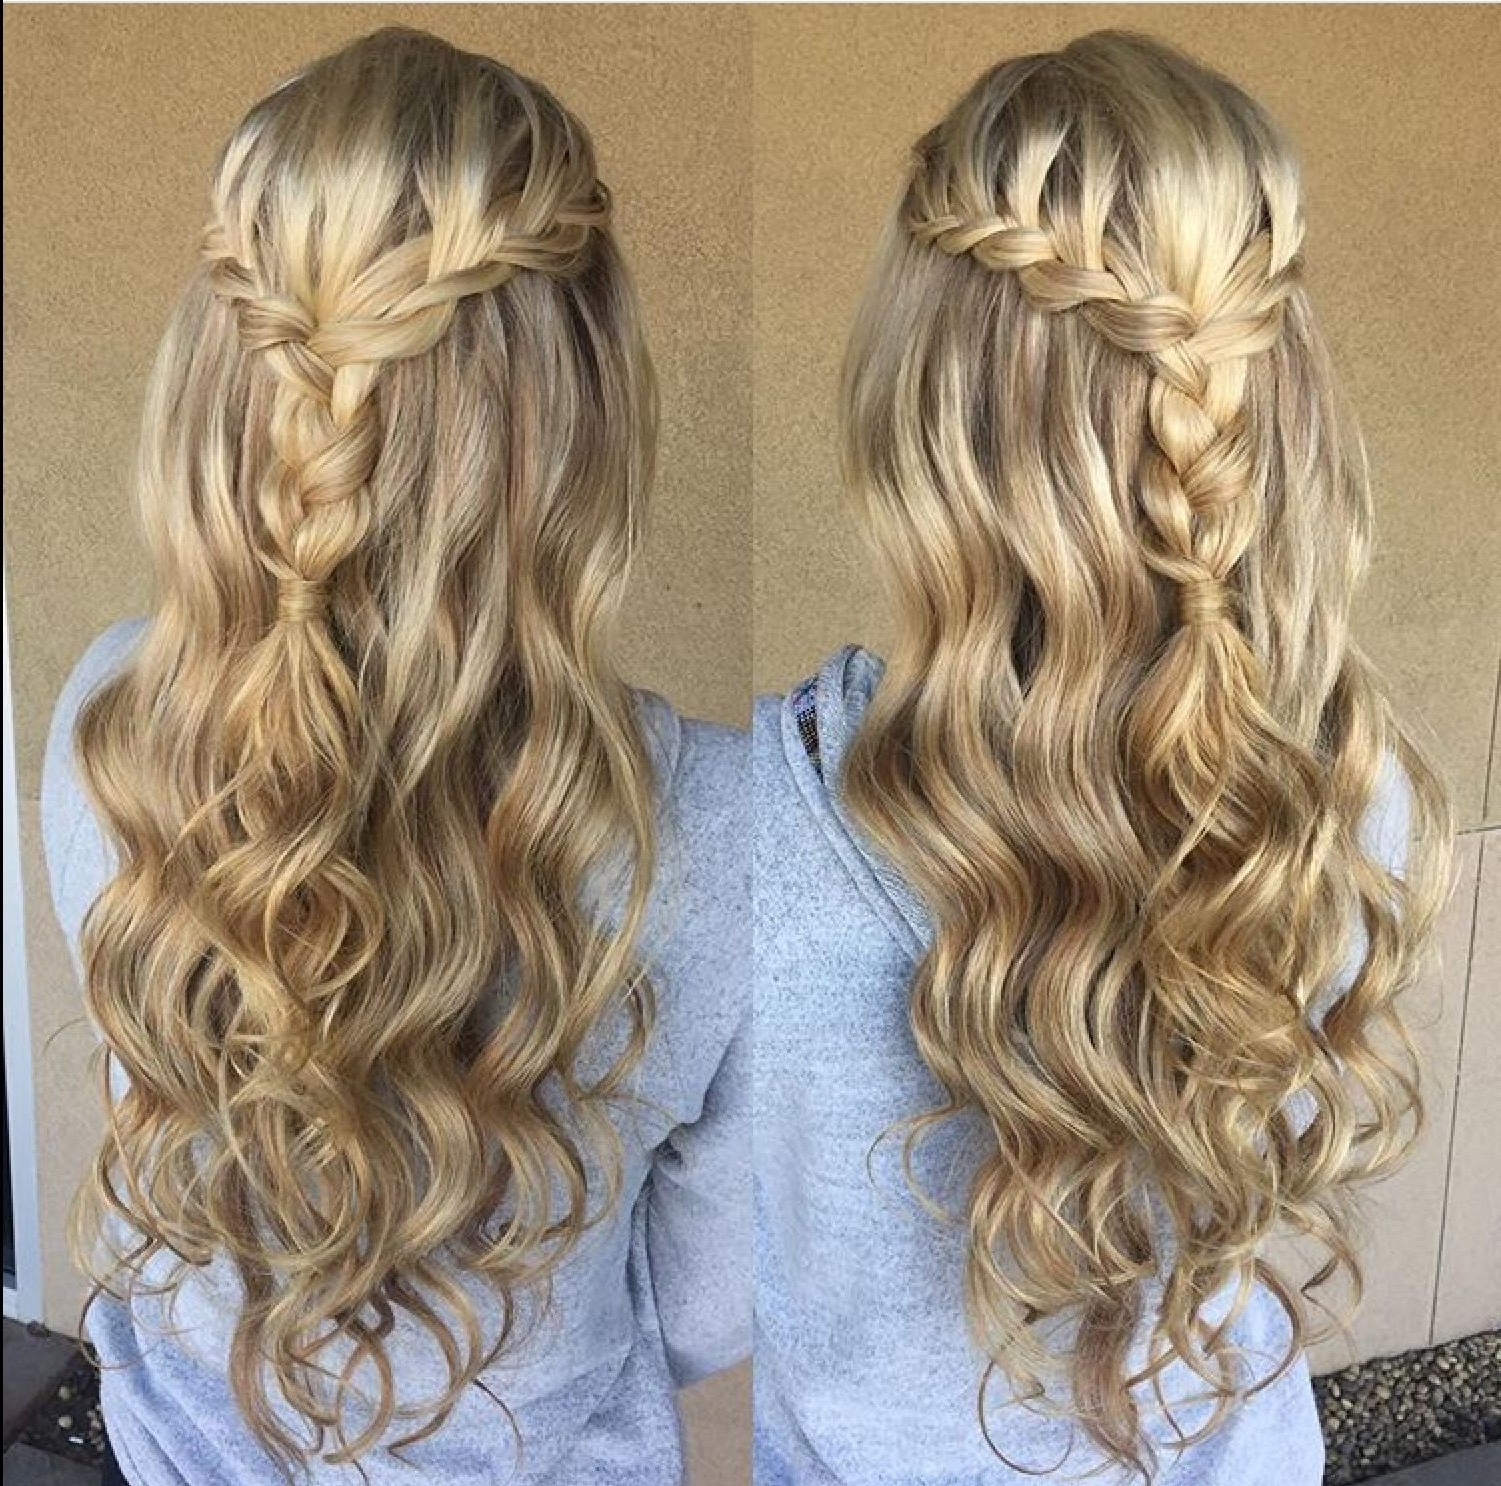 Blonde Braid Prom Formal Hairstyle Half Up Long Hair Wedding Updo Within Braided Hair Updo Hairstyles (View 3 of 15)